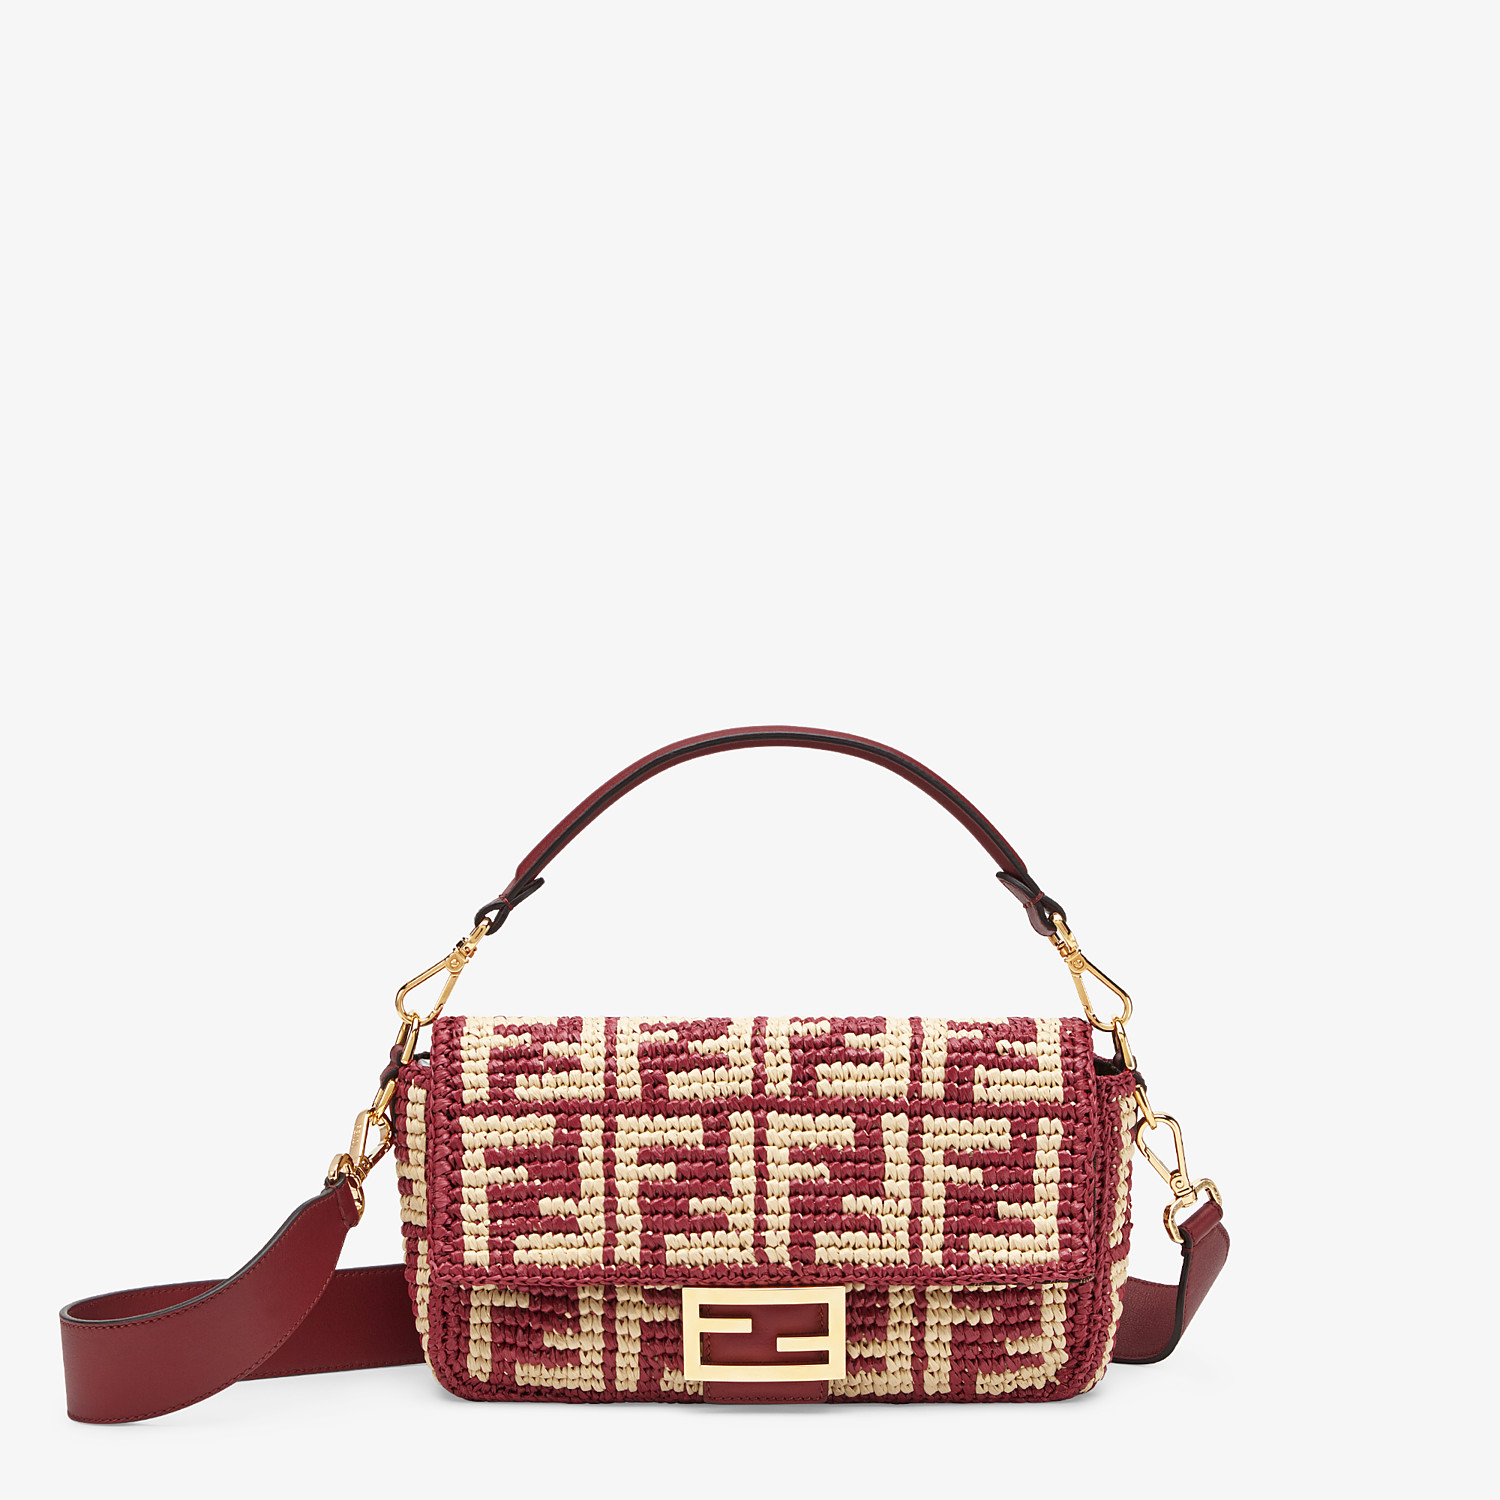 FENDI BAGUETTE - Burgundy raffia FF bag - view 1 detail